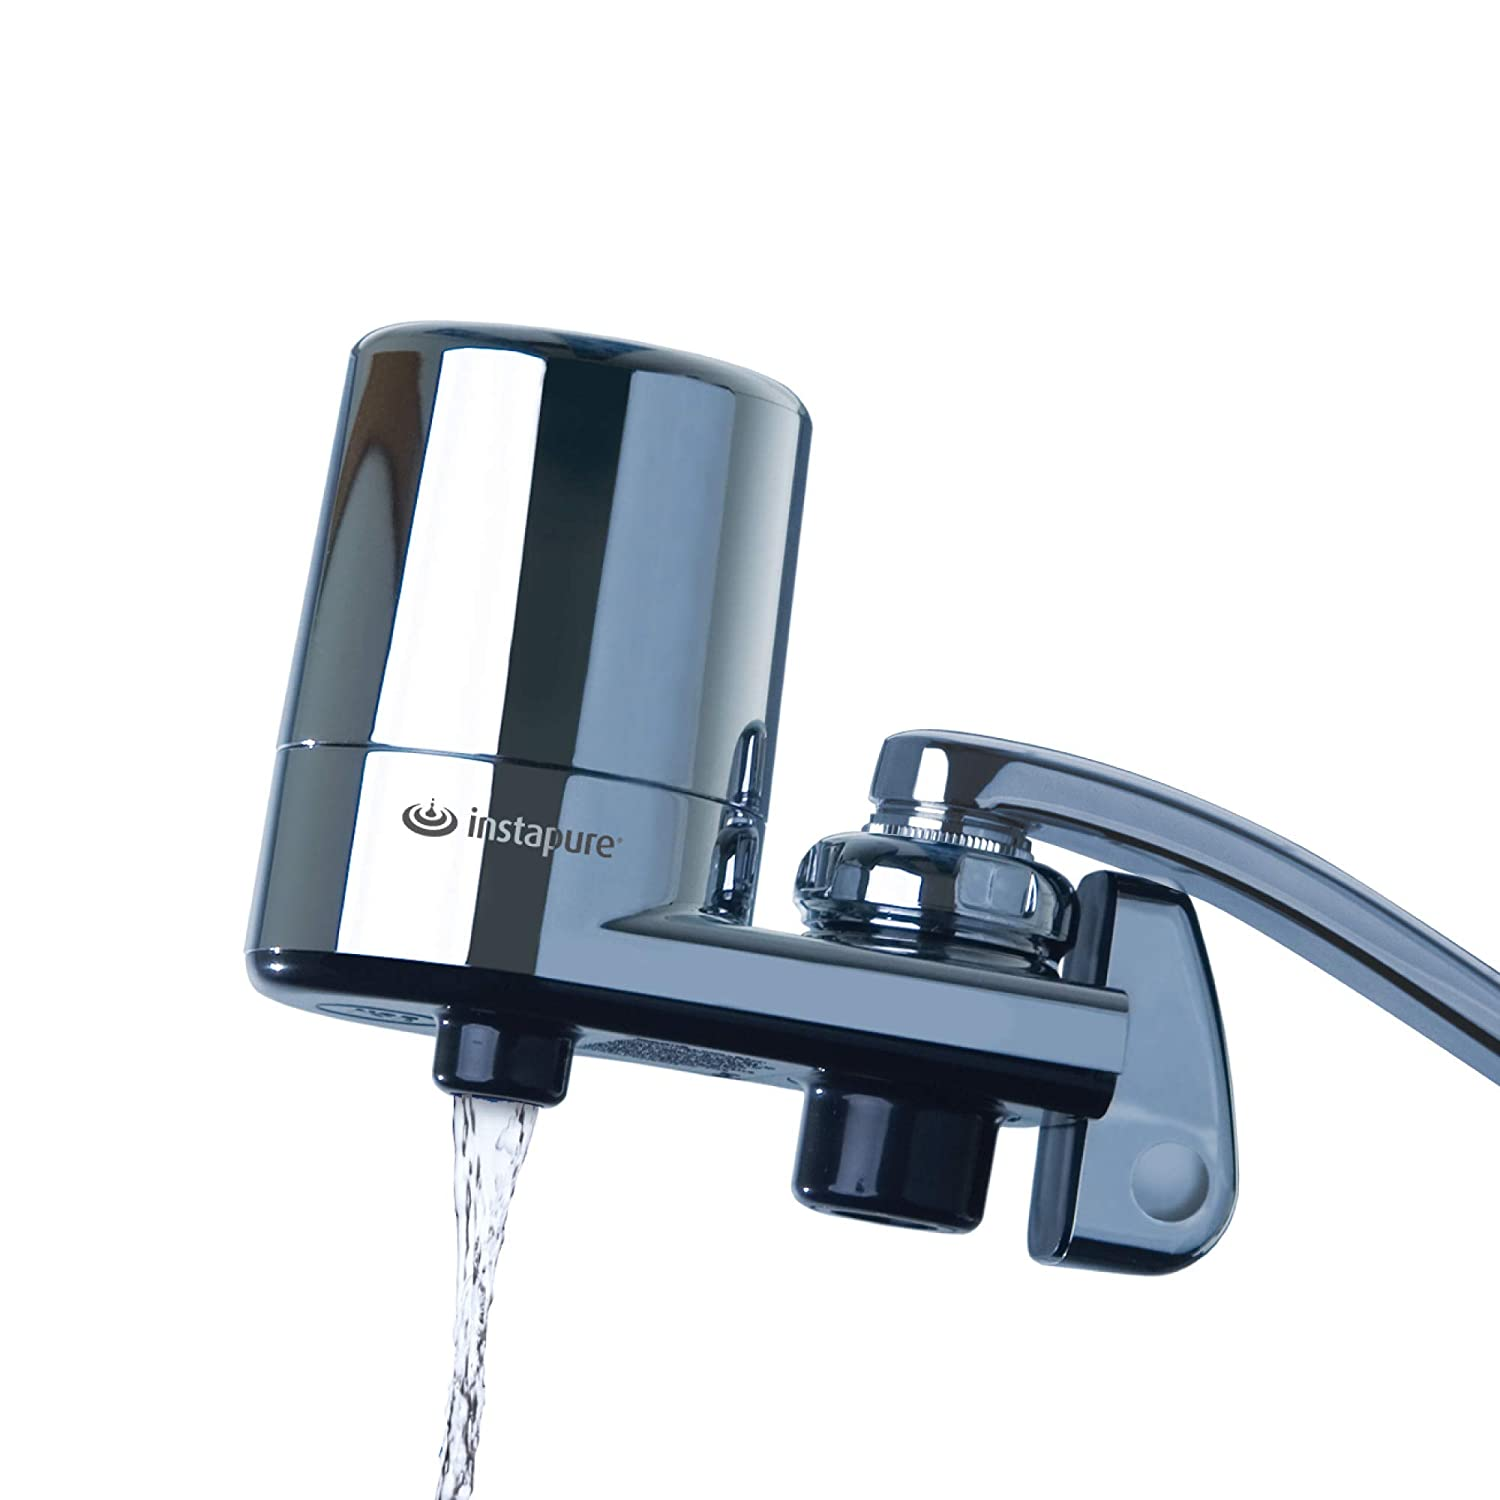 Top 10 Best Faucet Water Filter Reviews in 2020 9